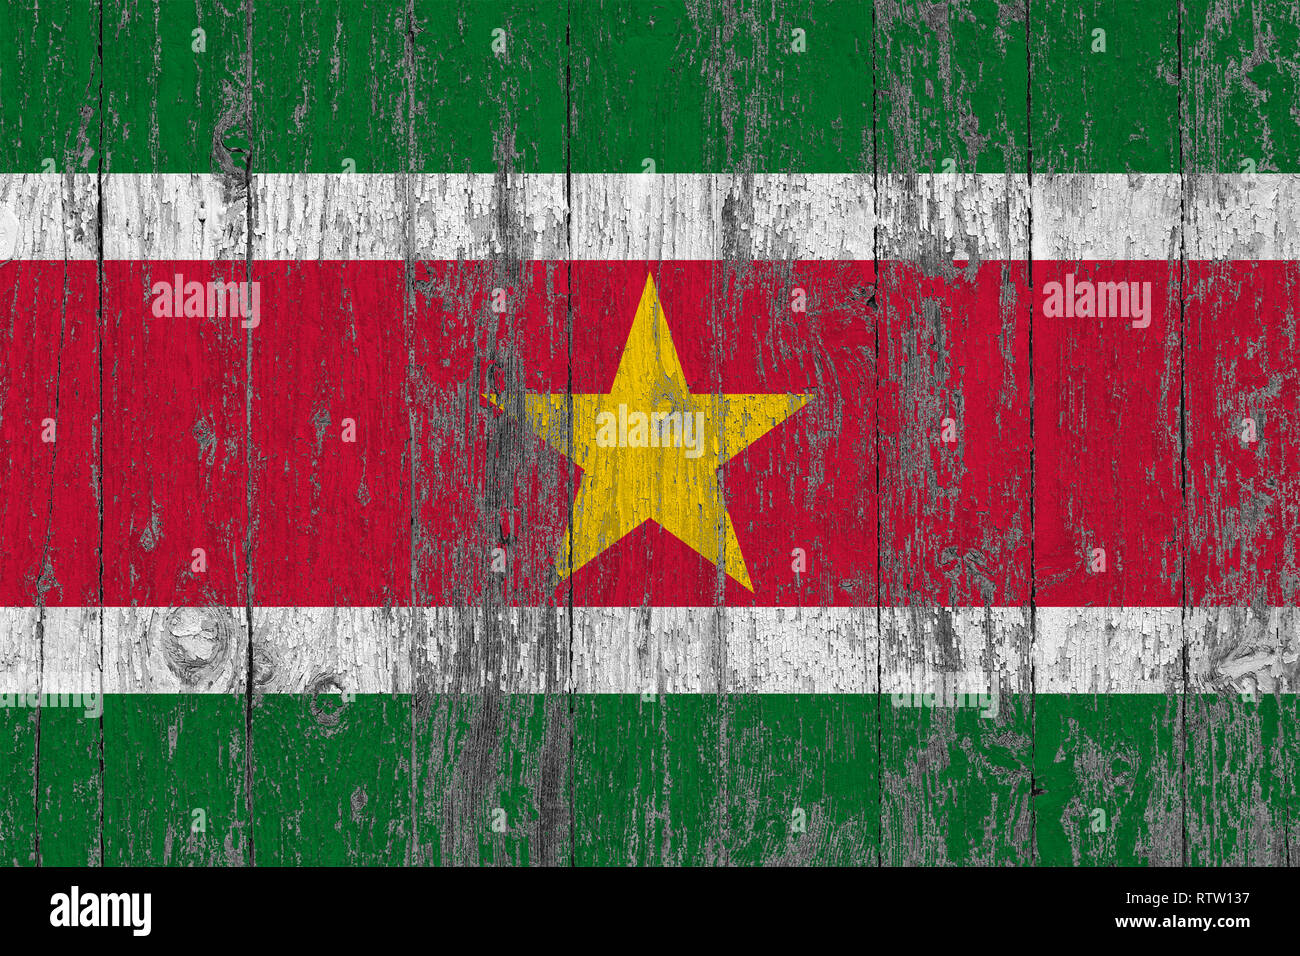 Flag of Suriname painted on worn out wooden texture background. - Stock Image